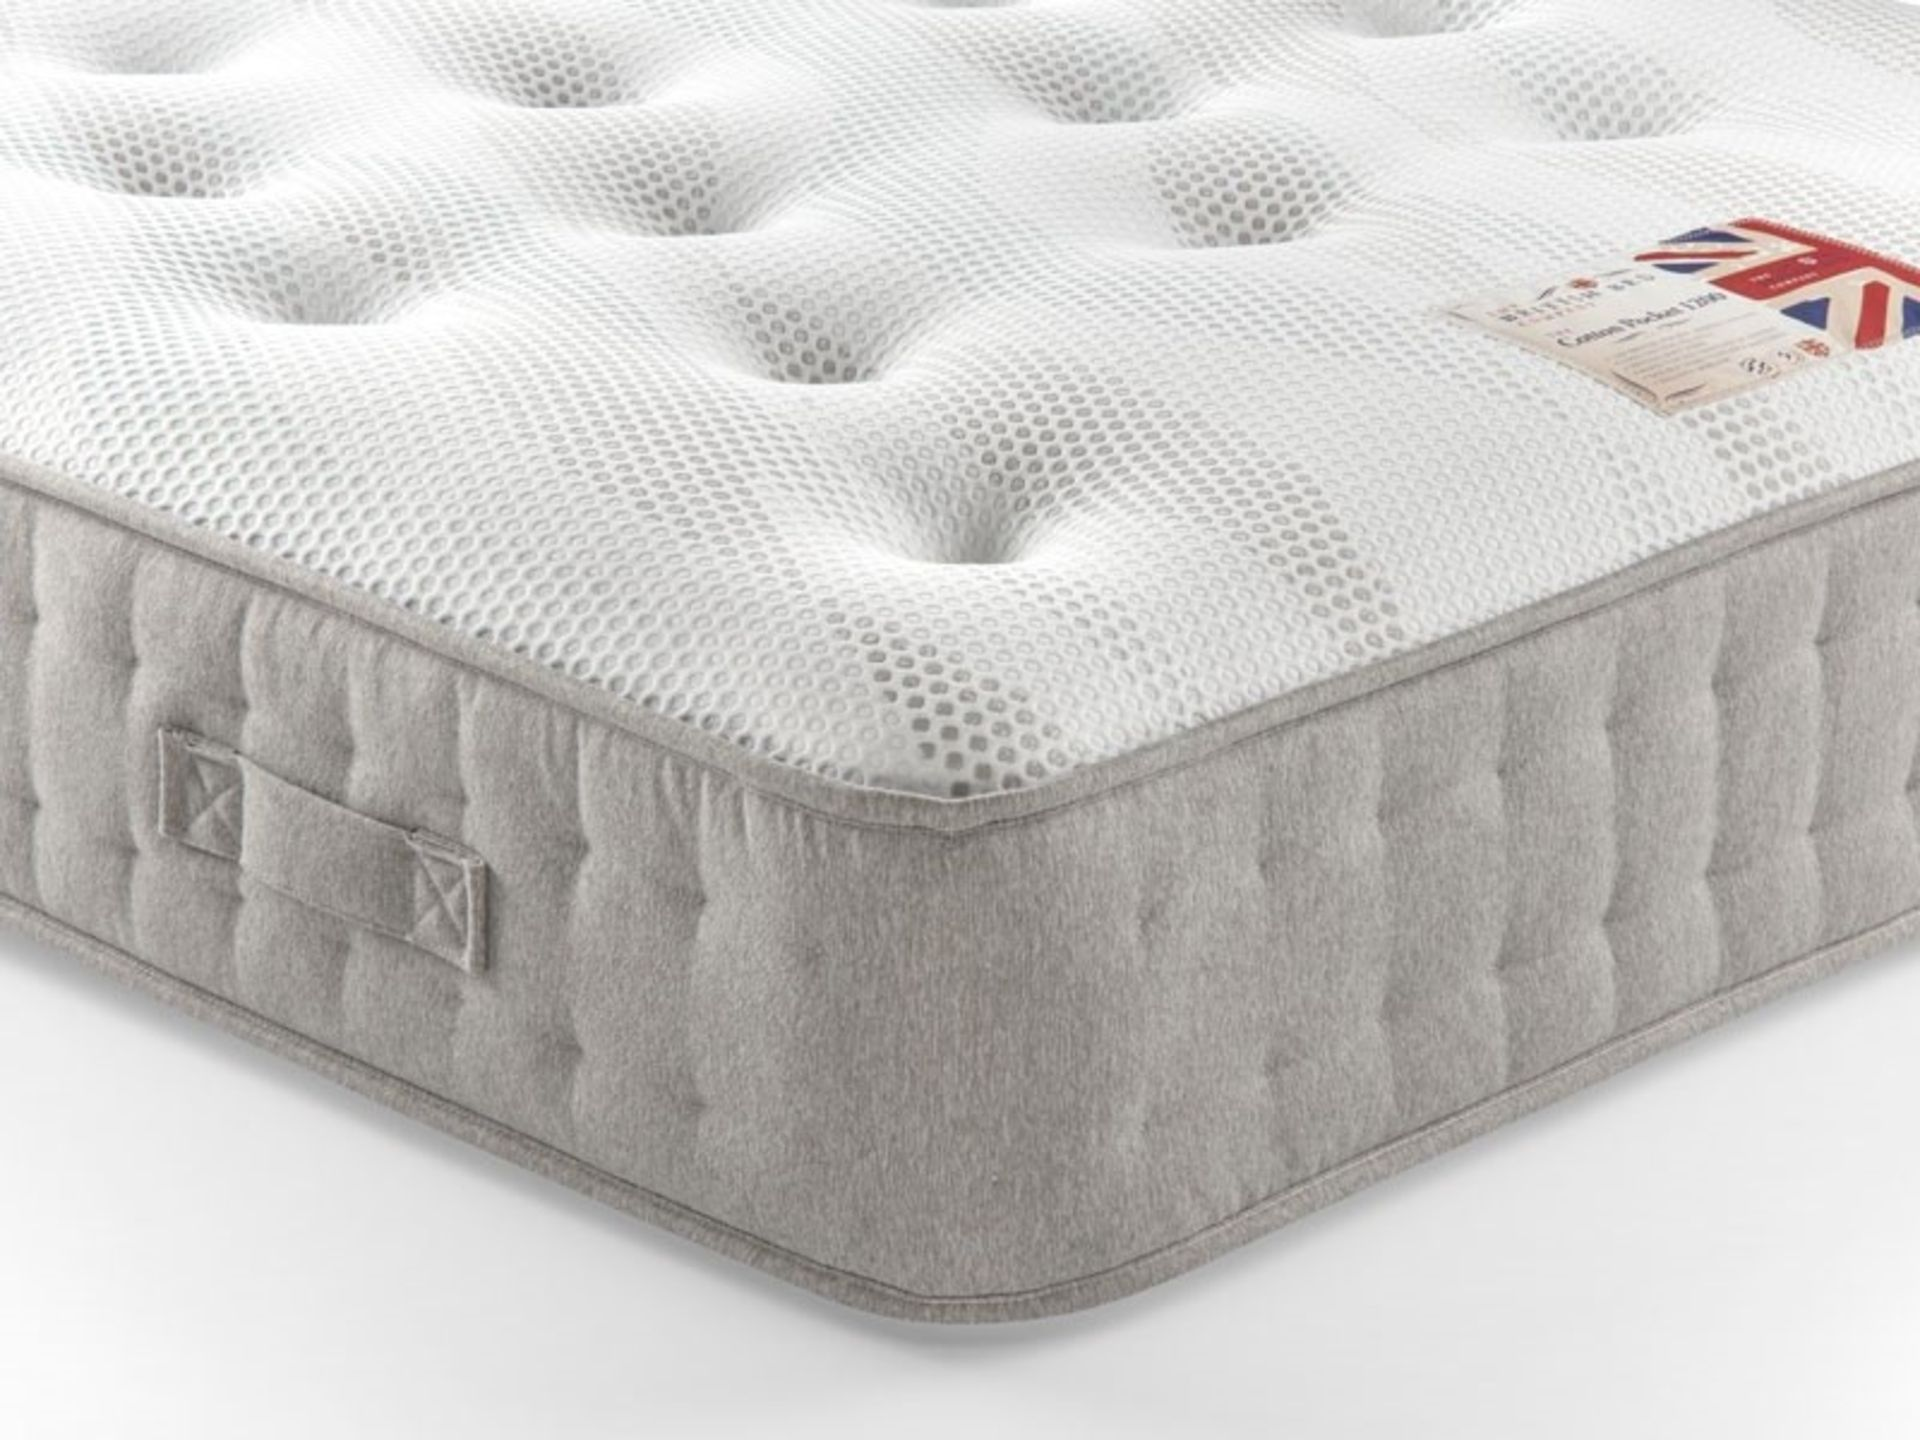 Lot 114 - 1 GRADE B BAGGED THE BRITISH BED COMPANY COTTON POCKET 1400 CHENILLE POCKET SPRUNG DOUBLE MATTRESS -